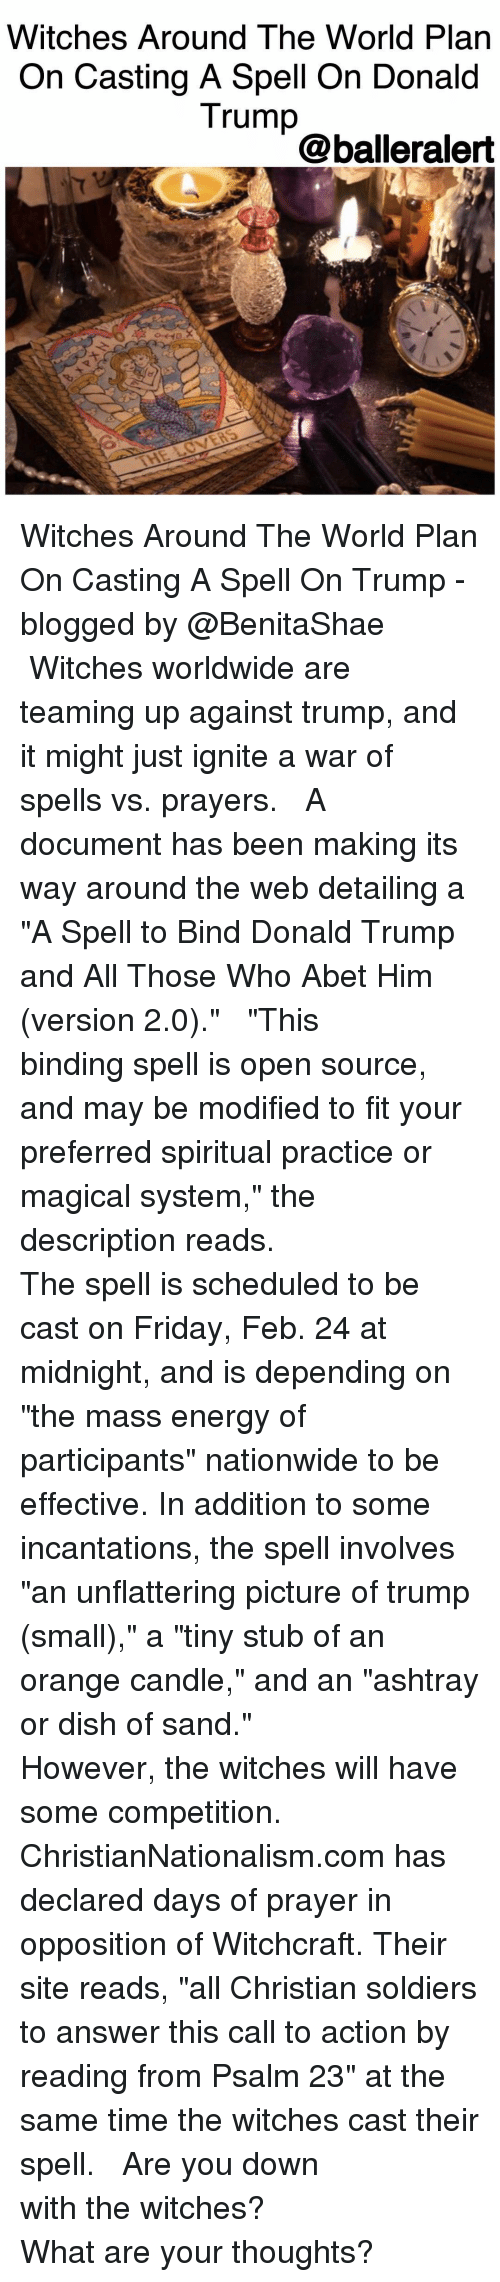 """Friday, Memes, and Dish: Witches Around The World Plan  On Casting A Spell On Donald  Trump  @balleralert Witches Around The World Plan On Casting A Spell On Trump -blogged by @BenitaShae ⠀⠀⠀⠀⠀⠀⠀ ⠀⠀⠀⠀⠀⠀⠀ Witches worldwide are teaming up against trump, and it might just ignite a war of spells vs. prayers. ⠀⠀⠀⠀⠀⠀⠀ ⠀⠀⠀⠀⠀⠀⠀ A document has been making its way around the web detailing a """"A Spell to Bind Donald Trump and All Those Who Abet Him (version 2.0)."""" ⠀⠀⠀⠀⠀⠀⠀ ⠀⠀⠀⠀⠀⠀⠀ """"This binding spell is open source, and may be modified to fit your preferred spiritual practice or magical system,"""" the description reads. ⠀⠀⠀⠀⠀⠀⠀ ⠀⠀⠀⠀⠀⠀⠀ The spell is scheduled to be cast on Friday, Feb. 24 at midnight, and is depending on """"the mass energy of participants"""" nationwide to be effective. In addition to some incantations, the spell involves """"an unflattering picture of trump (small),"""" a """"tiny stub of an orange candle,"""" and an """"ashtray or dish of sand."""" ⠀⠀⠀⠀⠀⠀⠀ ⠀⠀⠀⠀⠀⠀⠀ However, the witches will have some competition. ⠀⠀⠀⠀⠀⠀⠀ ⠀⠀⠀⠀⠀⠀⠀ ChristianNationalism.com has declared days of prayer in opposition of Witchcraft. Their site reads, """"all Christian soldiers to answer this call to action by reading from Psalm 23"""" at the same time the witches cast their spell. ⠀⠀⠀⠀⠀⠀⠀ ⠀⠀⠀⠀⠀⠀⠀ Are you down with the witches? ⠀⠀⠀⠀⠀⠀⠀ ⠀⠀⠀⠀⠀⠀⠀ What are your thoughts?"""